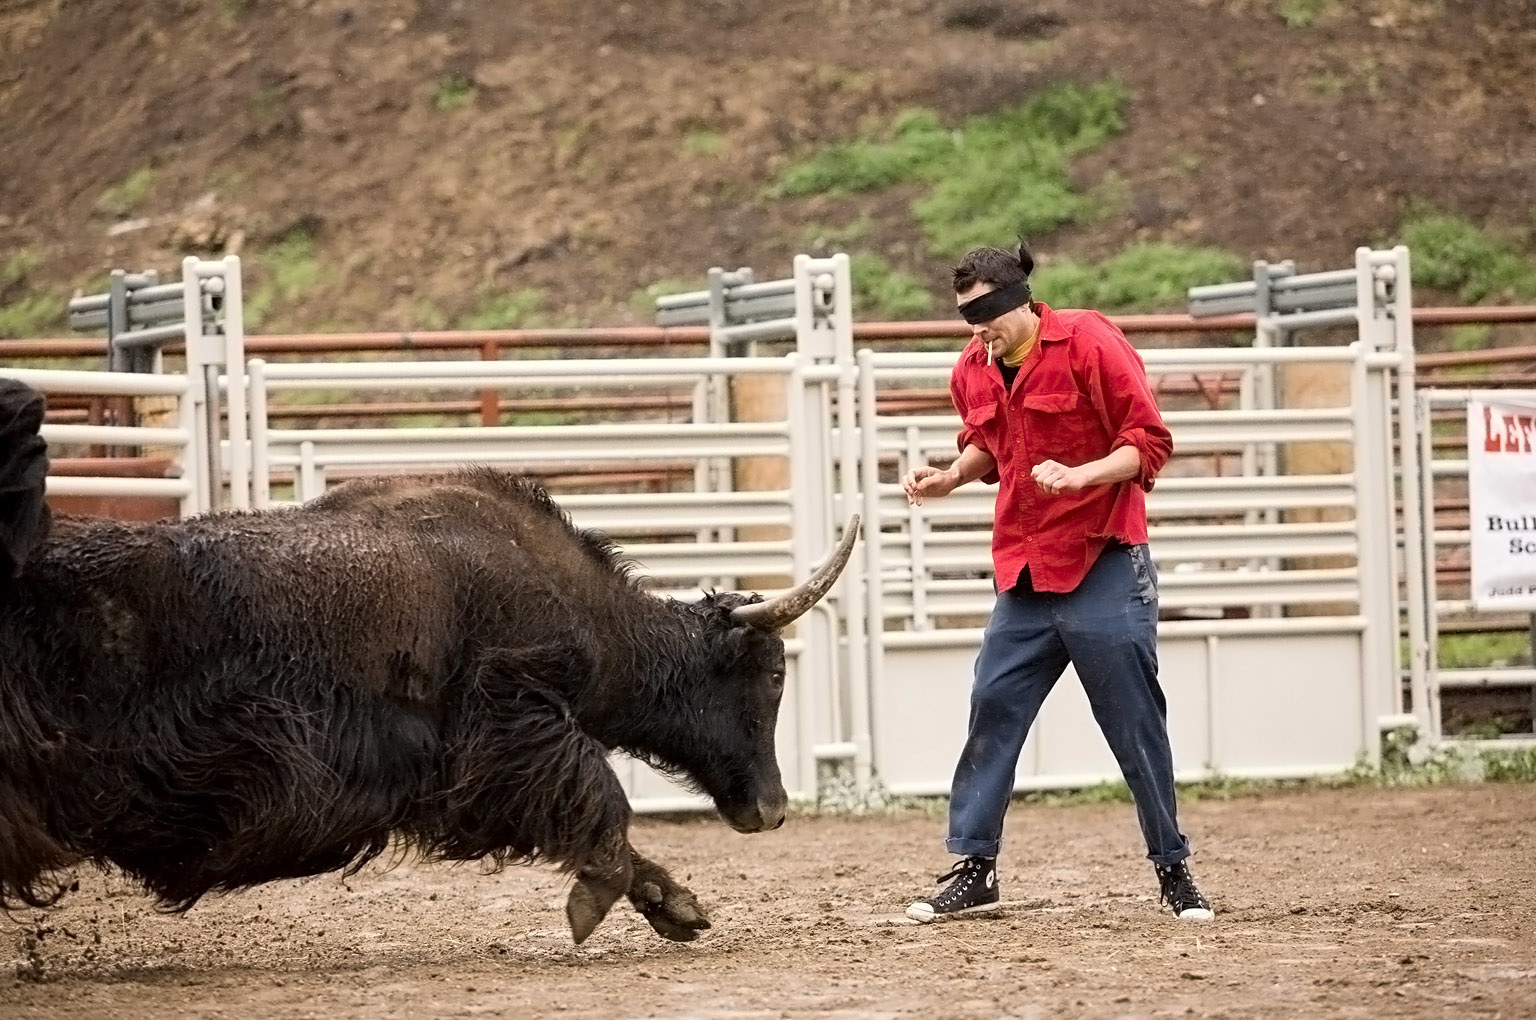 Knoxville braces himself before getting hit by a bull